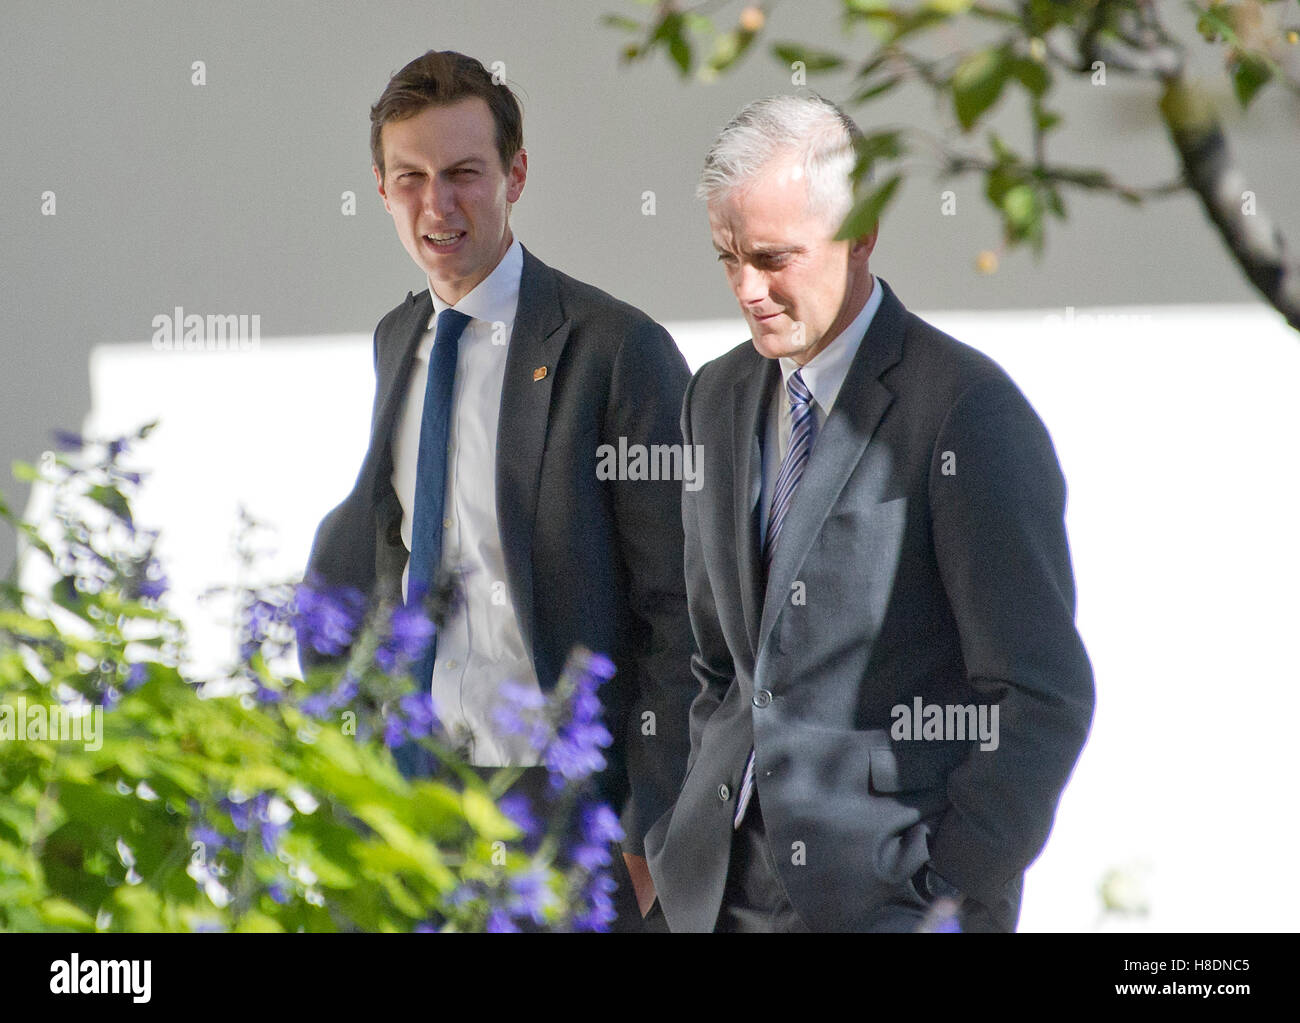 Washington, Us. 10th Nov, 2016. Jared Kushner and White House Chief of Staff Denis McDonough walk through the Rose - Stock Image